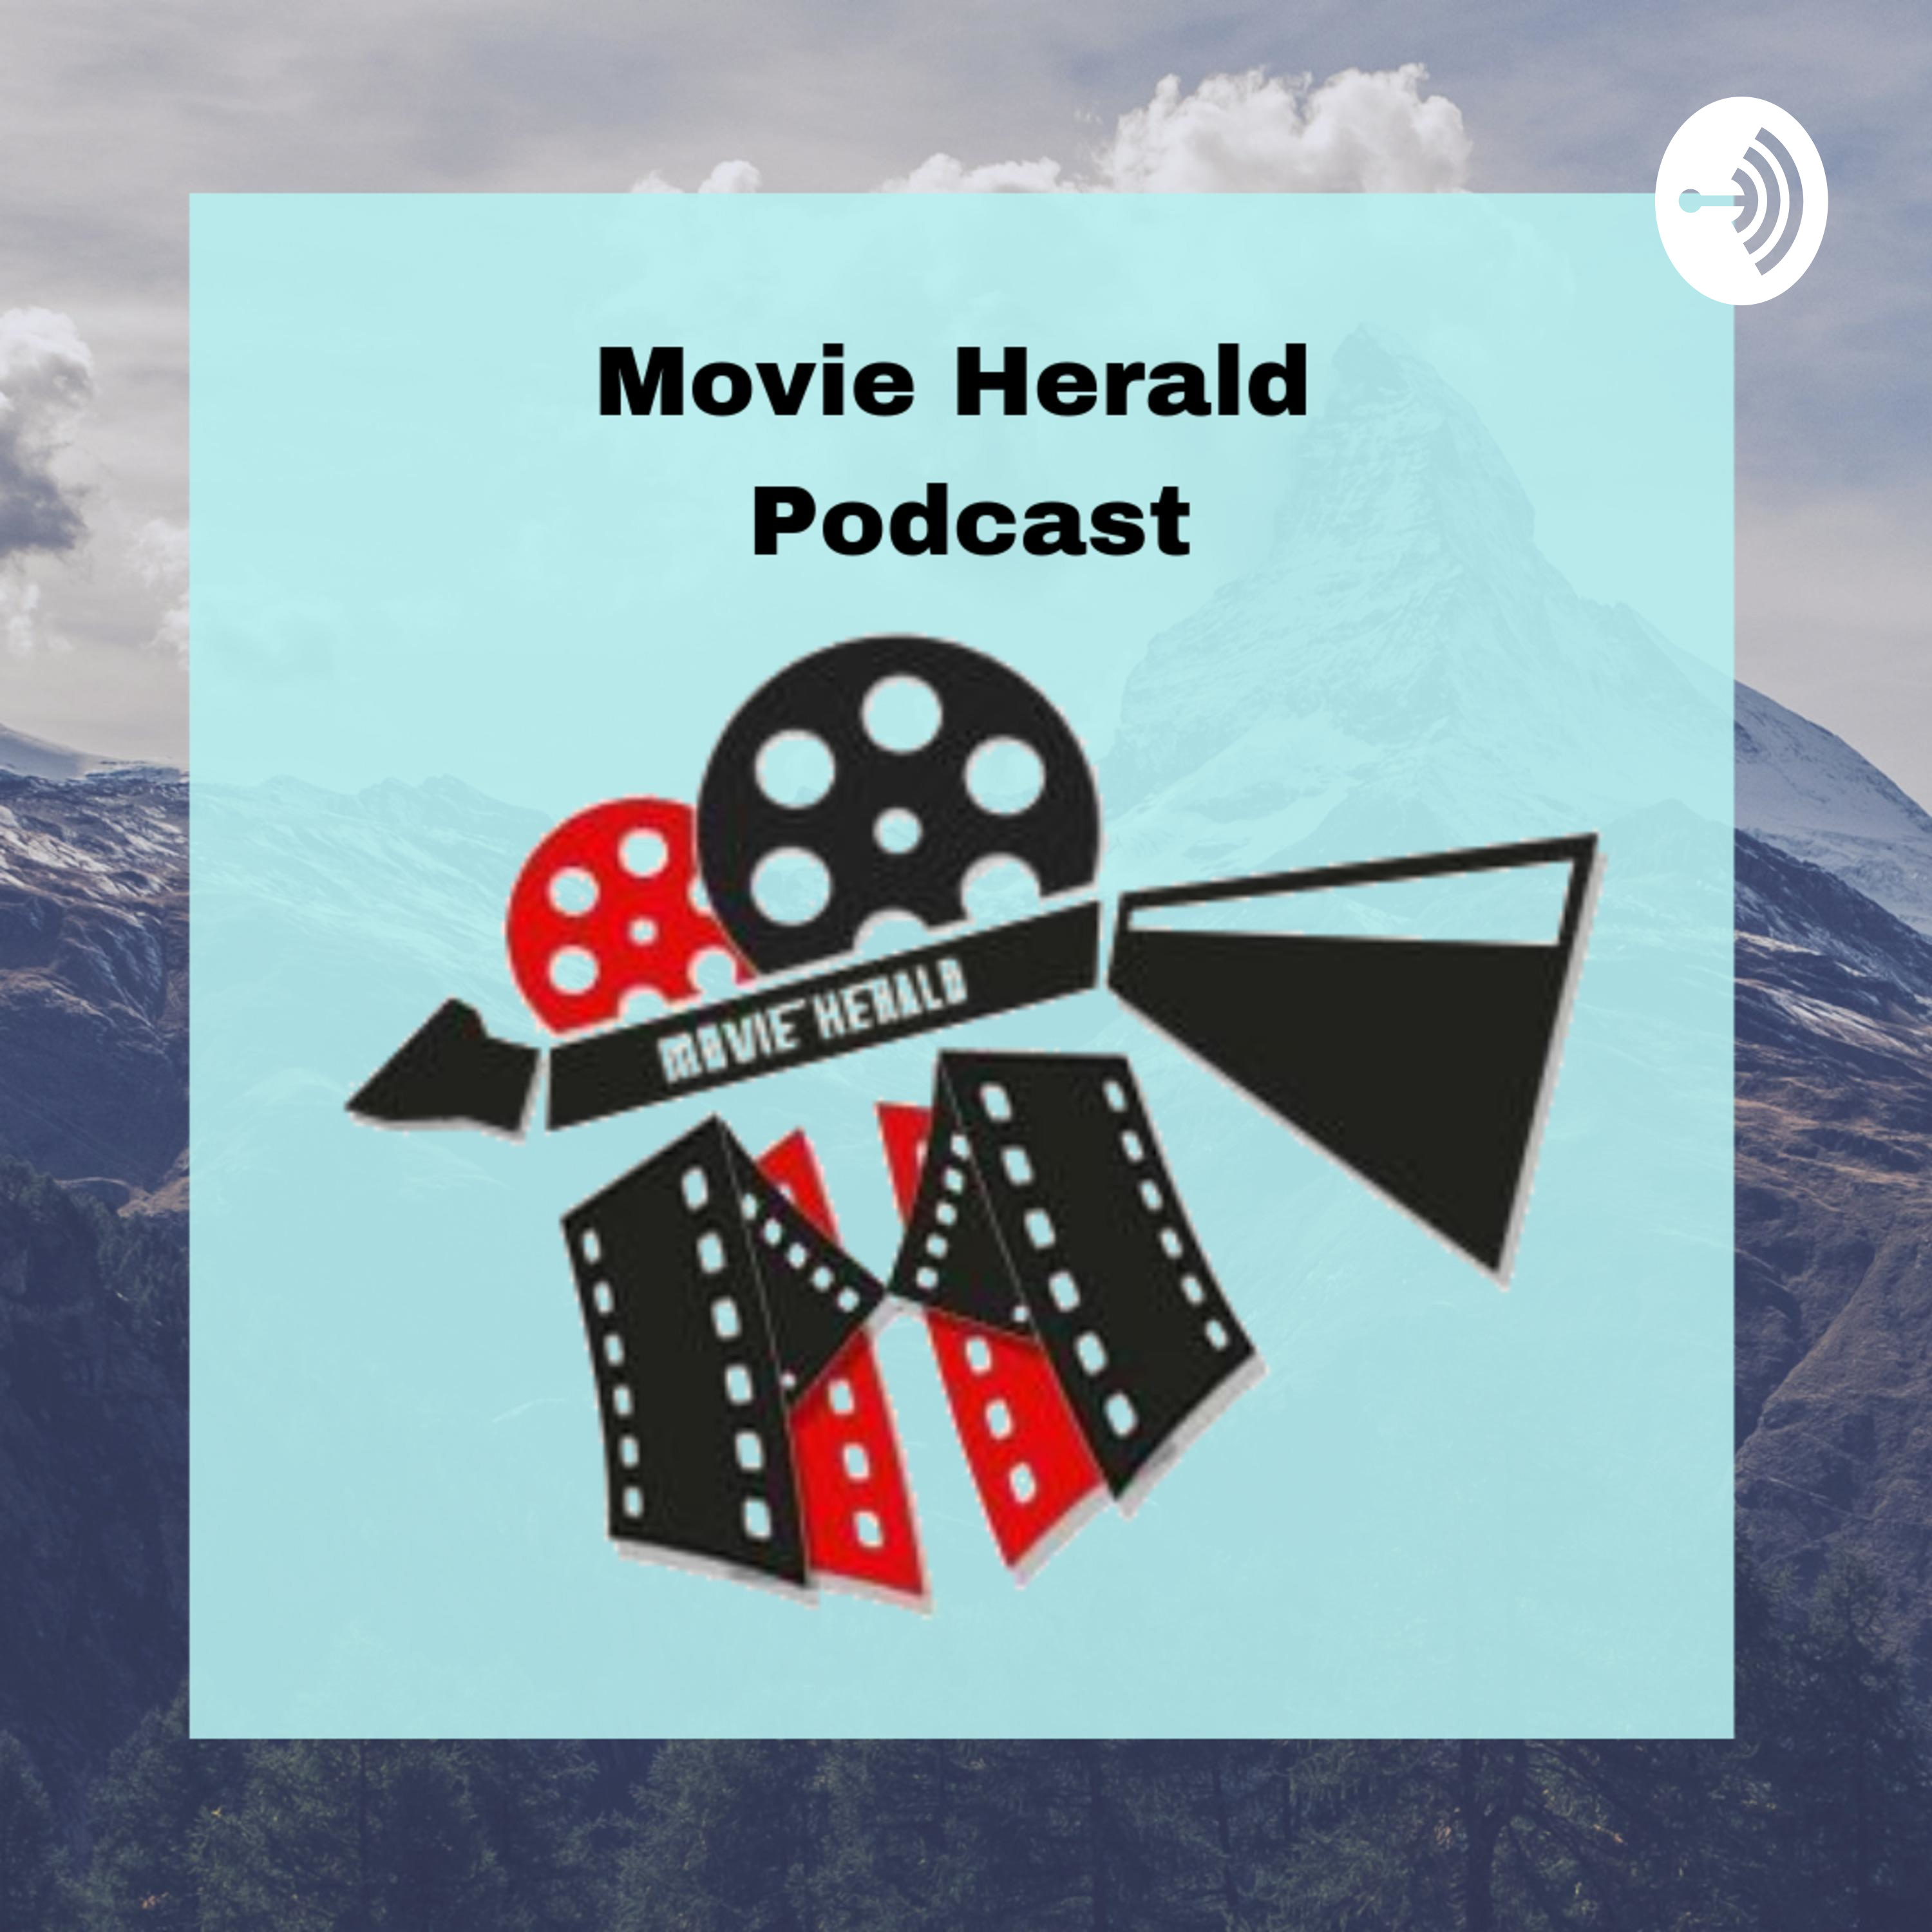 Movie Herald Tamil Podcasts | Listen Free on Castbox